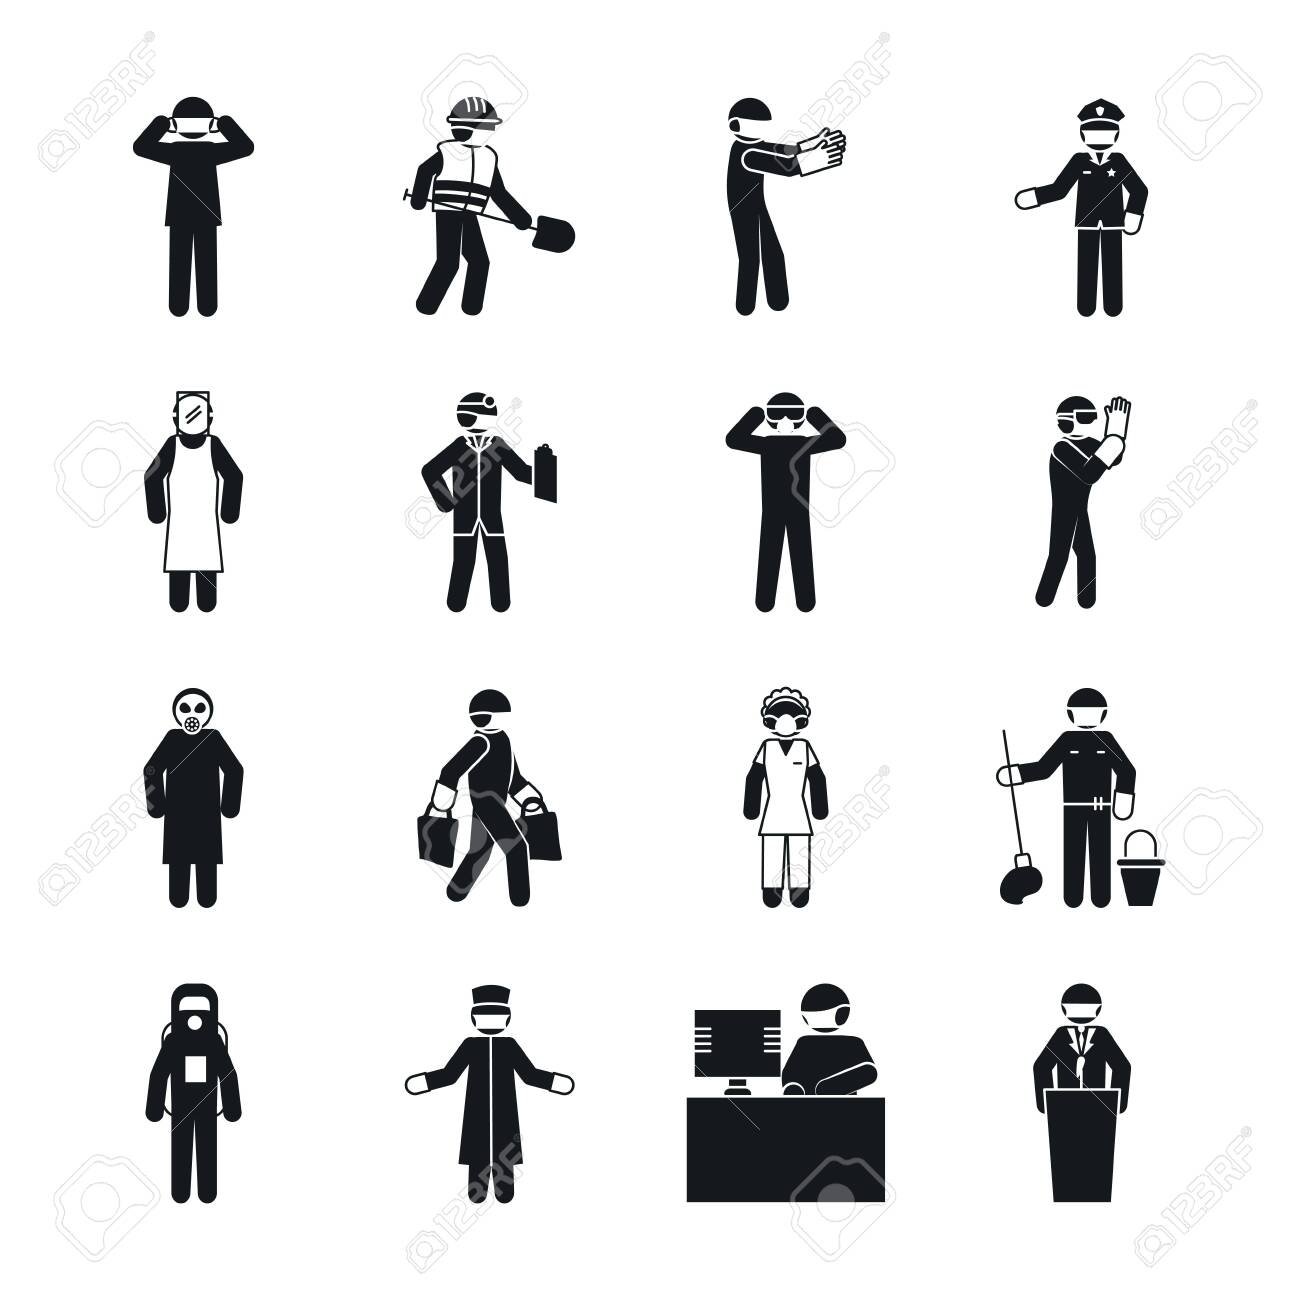 pictogram maid woman and essential workers icon set over white background, silhouette style, vector illustration - 148379352